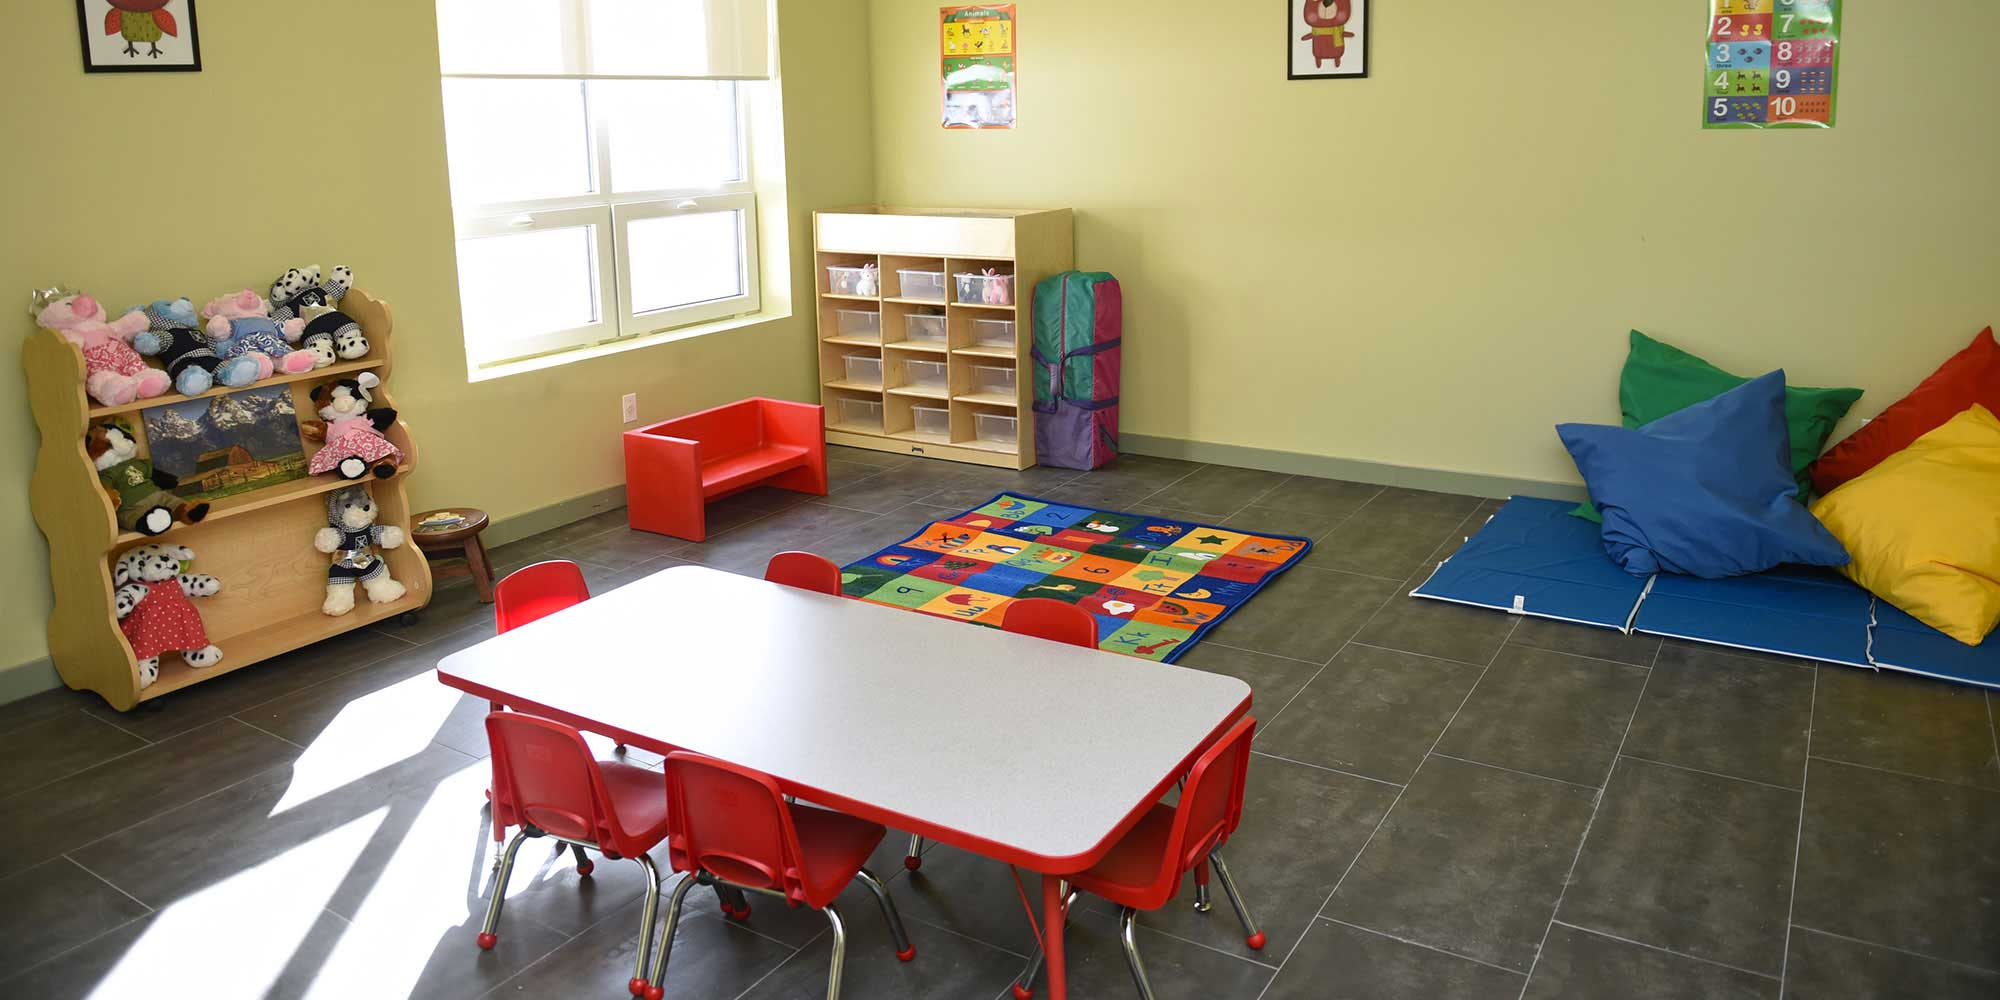 Kid's Play Room at One of PALS Domestic Violence Shelters